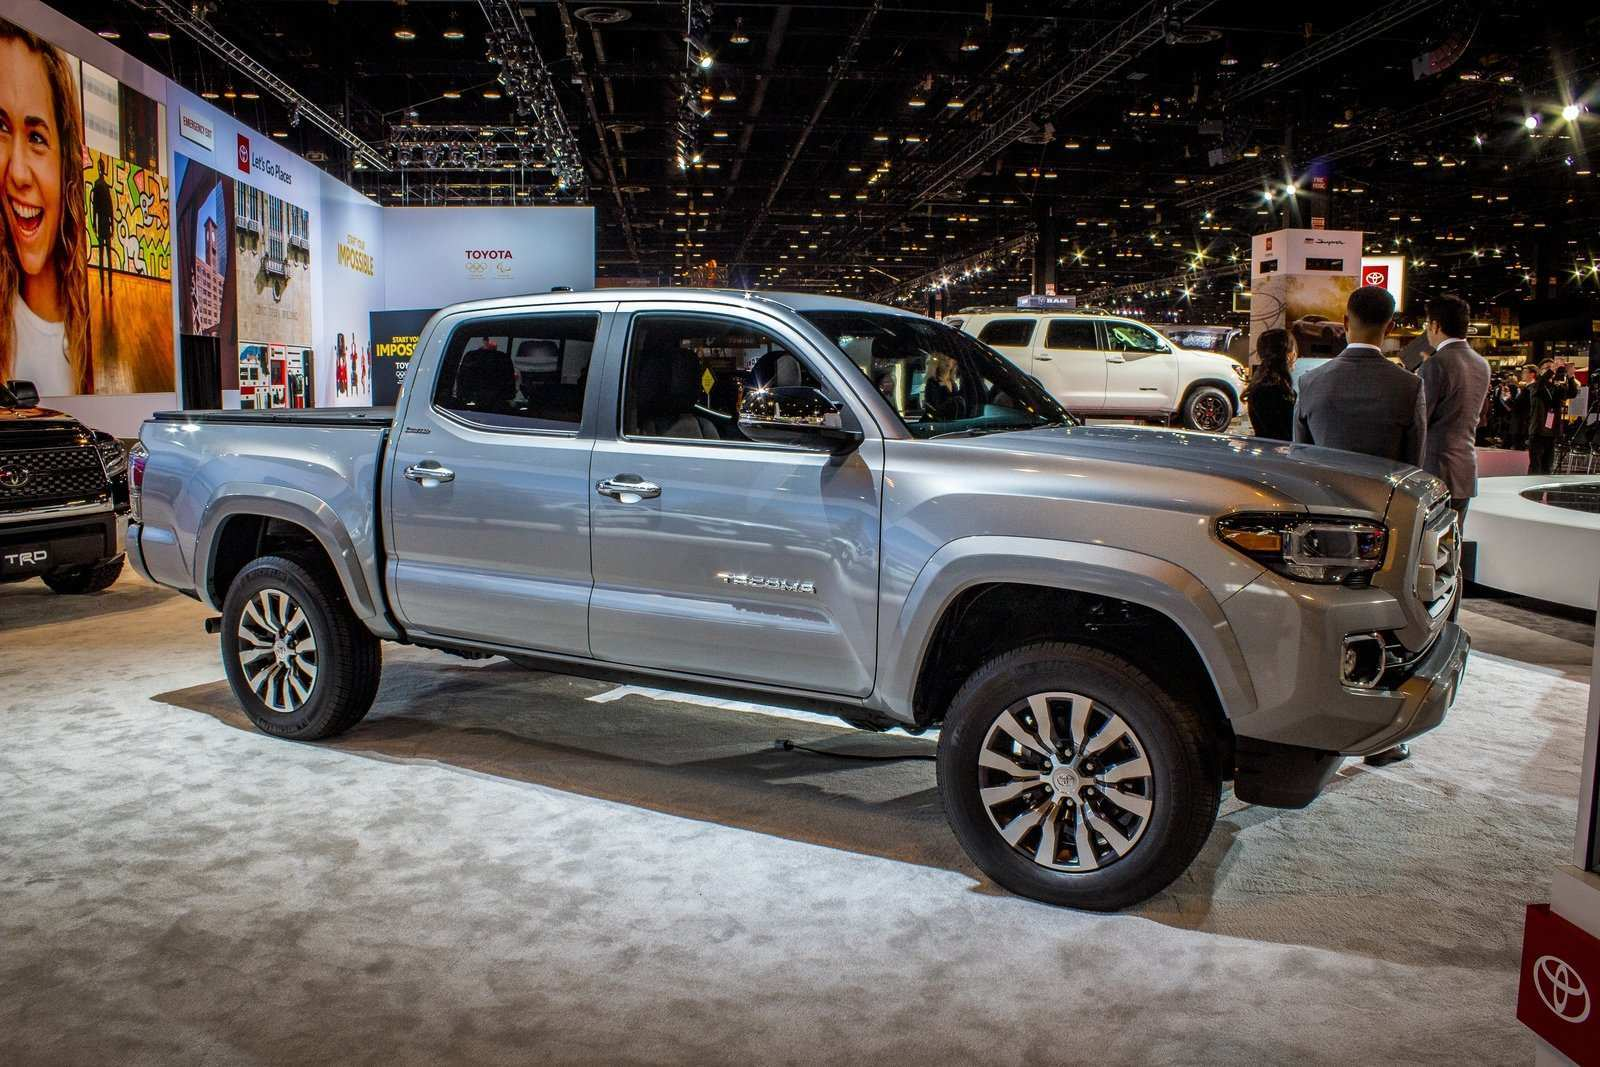 62 A Toyota Tacoma 2020 First Drive